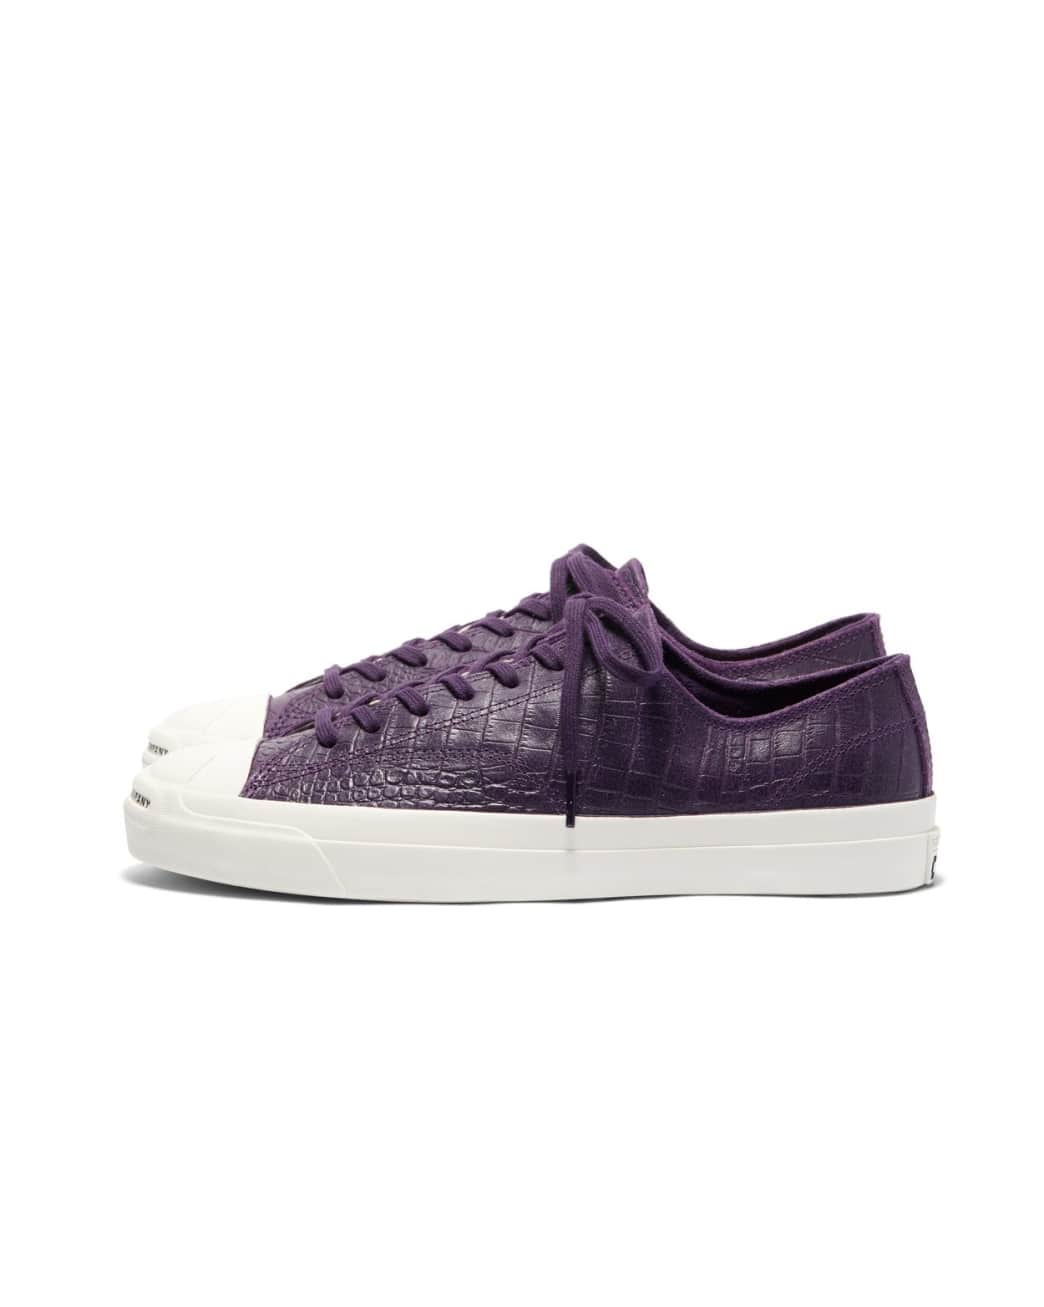 Converse CONS x Pop Trading Company JP Pro Ox Shoes - Dark Purple 'Dragonskin' | Shoes by Converse Cons 1